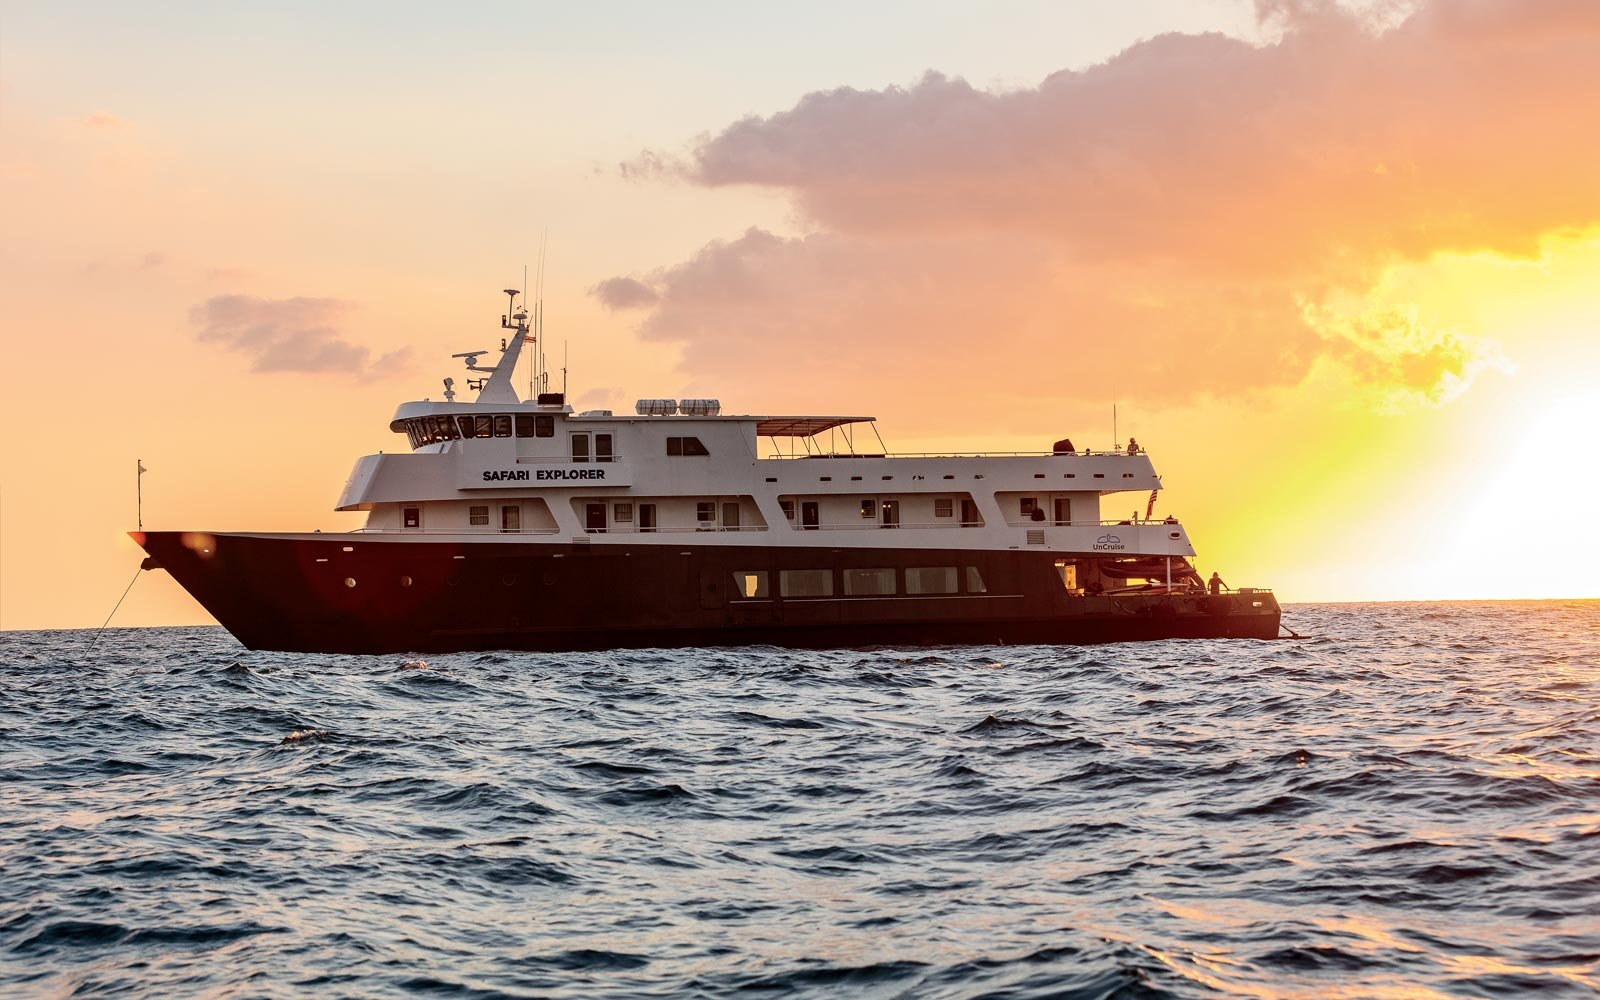 UnCruise Adventures' Safari Explorer ship in Hawaii